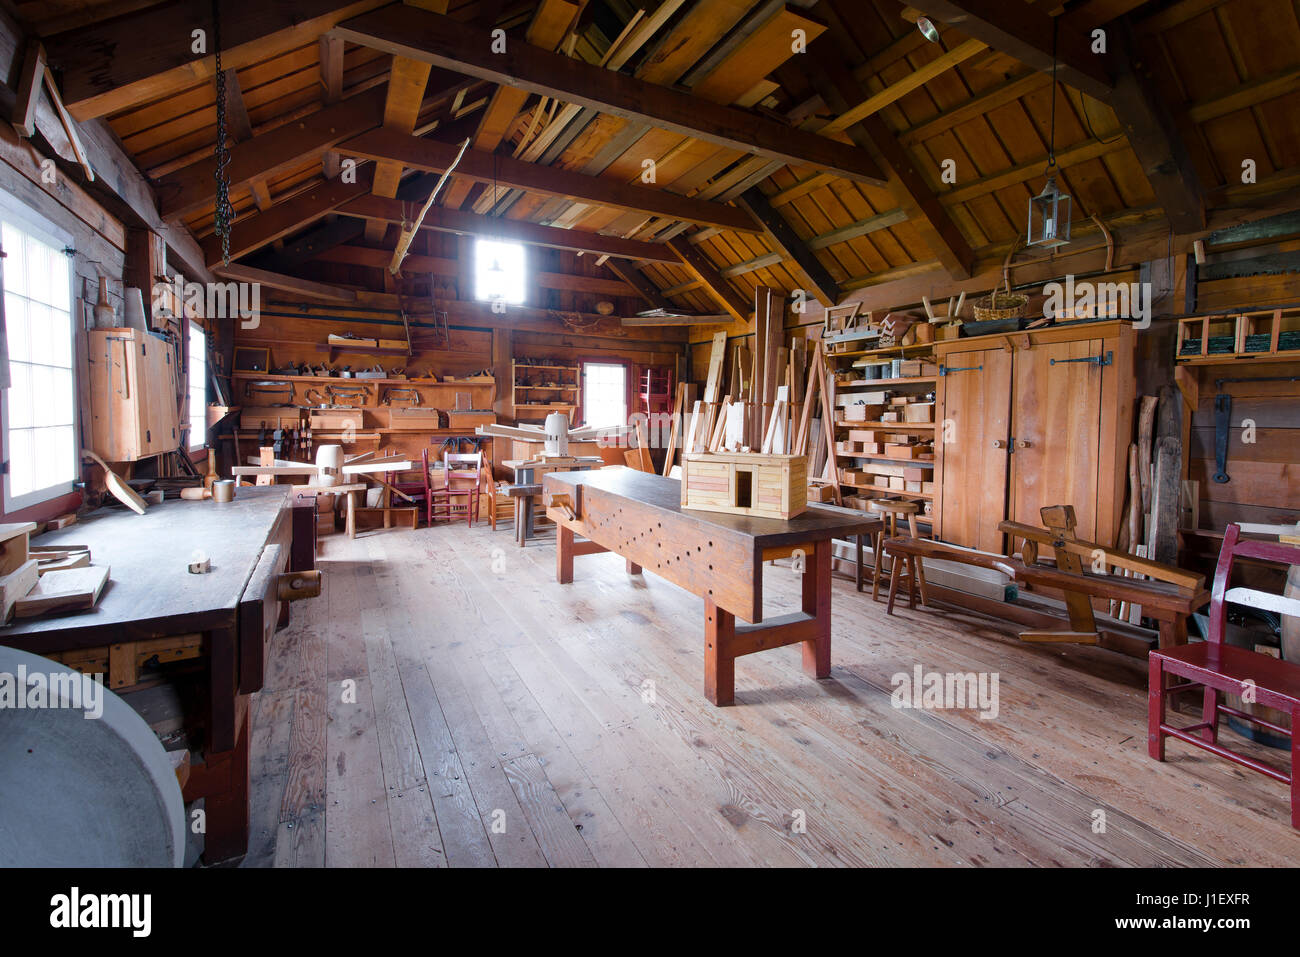 Interior Carpentry Workshop With Workbench, Tools Hanging On The Wooden  Walls, Wooden Blank And Finished Carpentry. Indoor Dried Planks On Beams